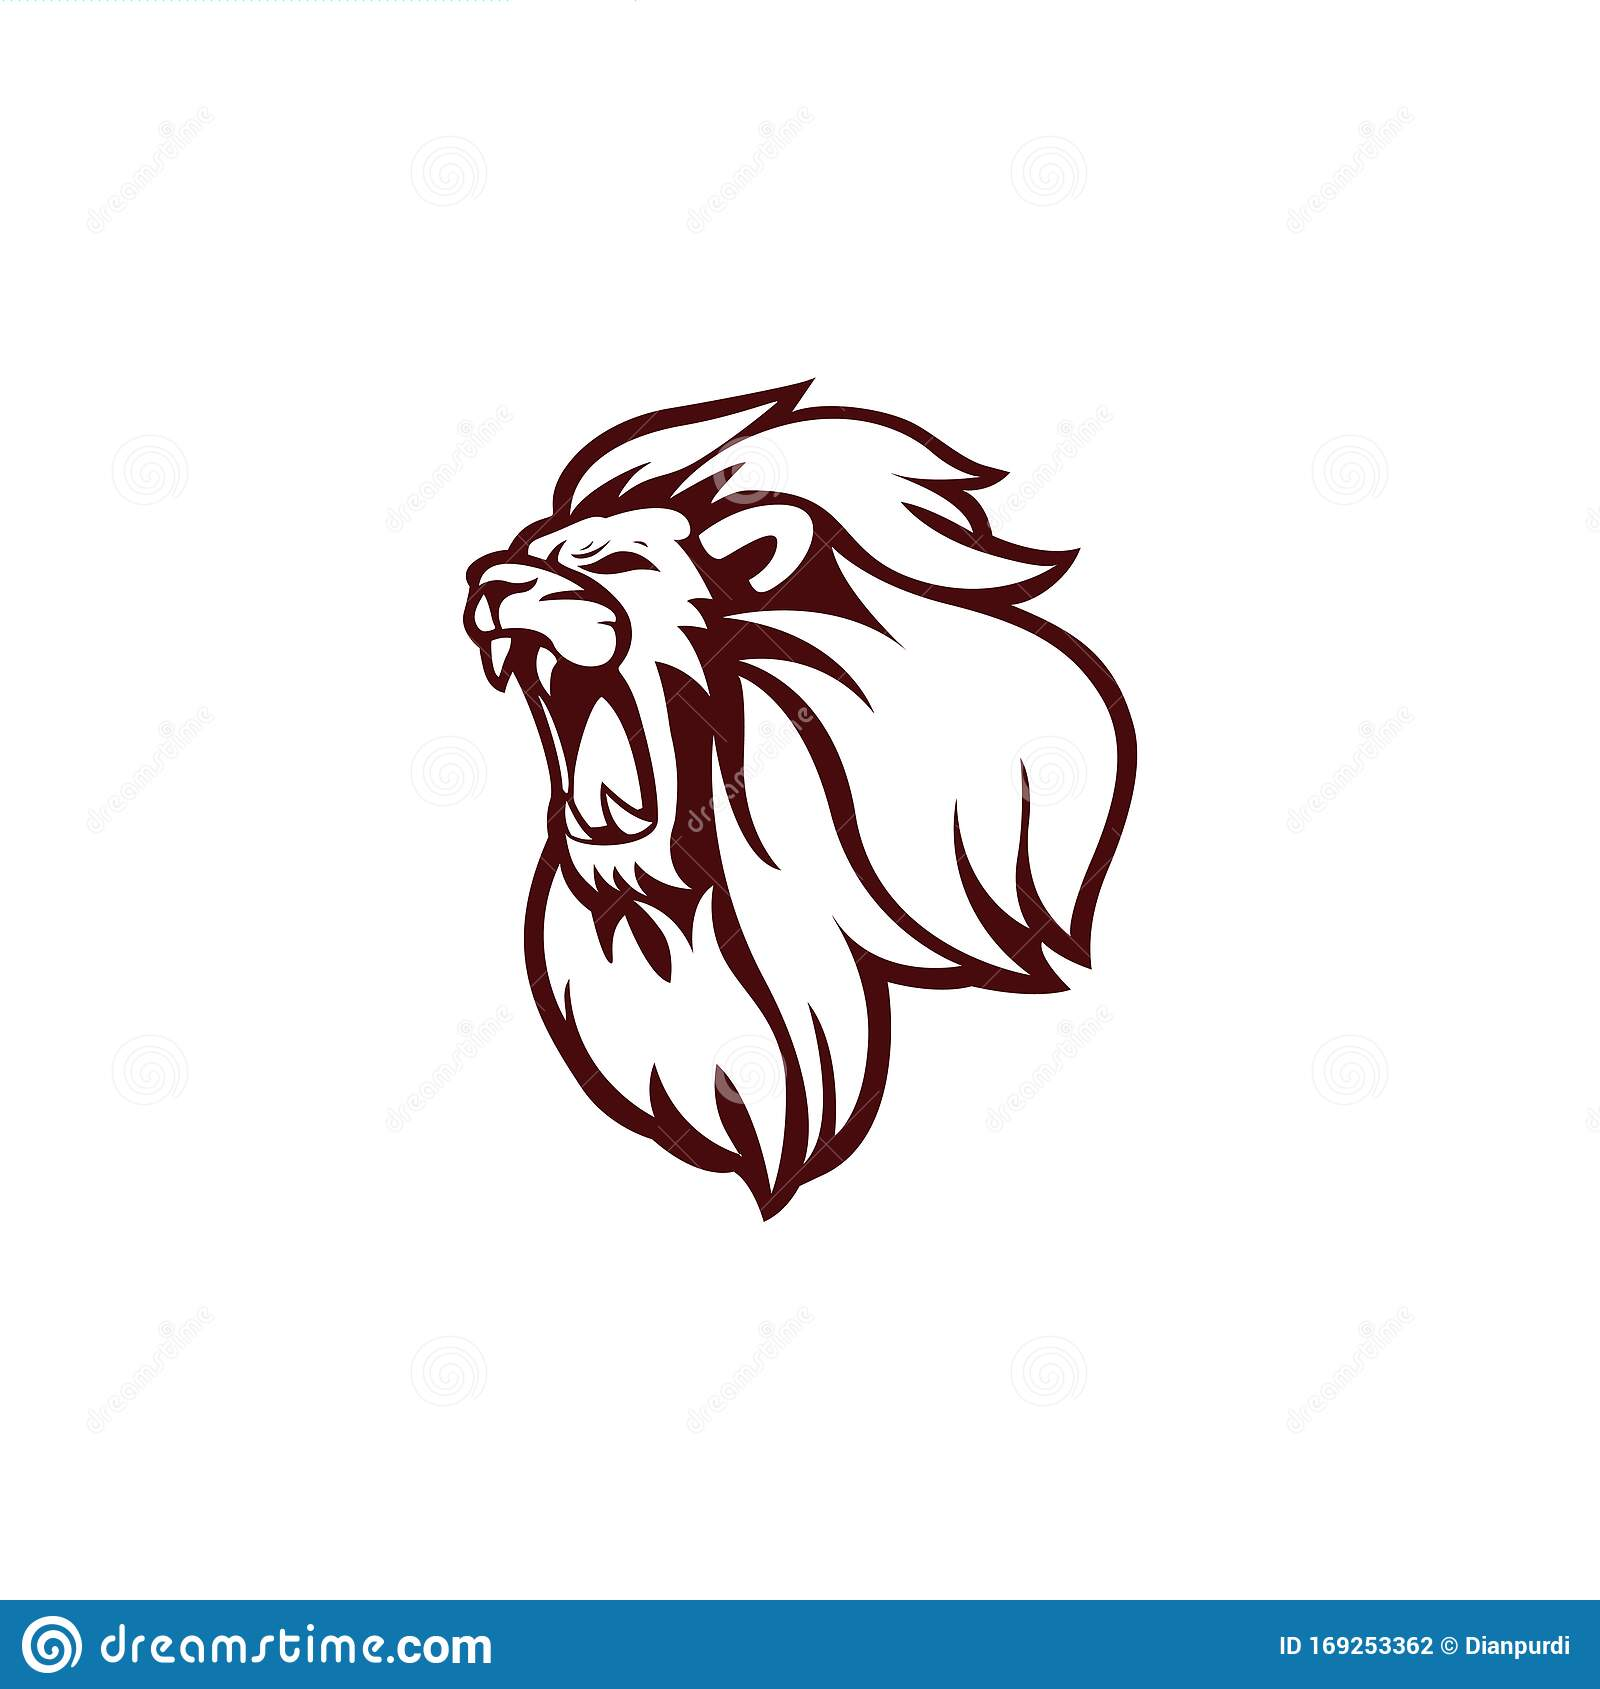 Lion Head Outline Stock Illustrations 1 991 Lion Head Outline Stock Illustrations Vectors Clipart Dreamstime Lion clipart lion head clip art transparent cartoon, isolated outline of a lion face stock vector illustration, lion template animal templates free premium templates, the head of the lion sideways black outline. https www dreamstime com angry lion head logo icon sign outline flat design vector illustration template image169253362